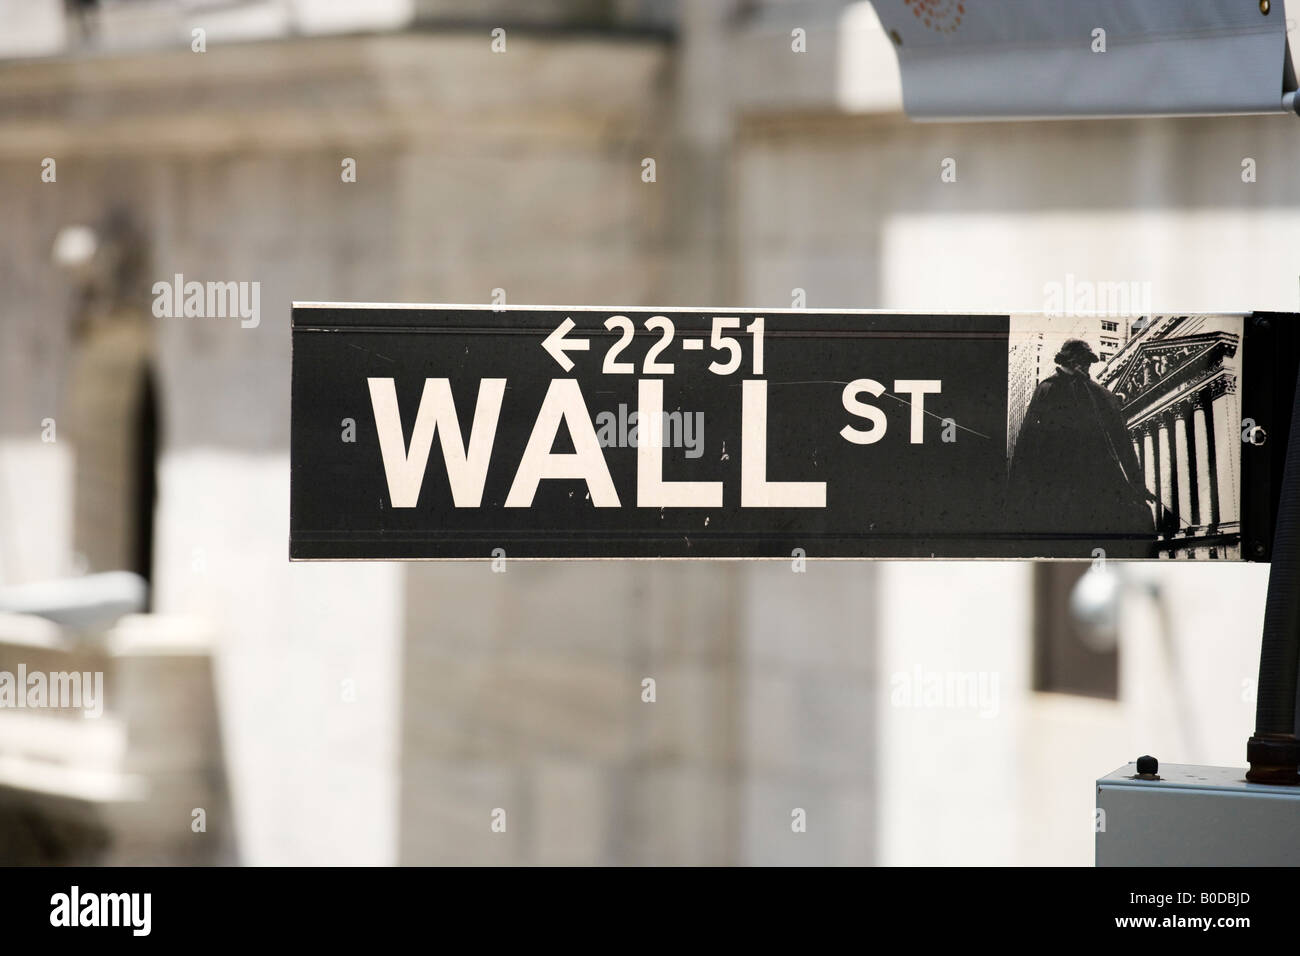 Wall Street sign in front of the New York Stock Exchange (NYSE), Wall Street, Financial District, NYC, New York - Stock Image